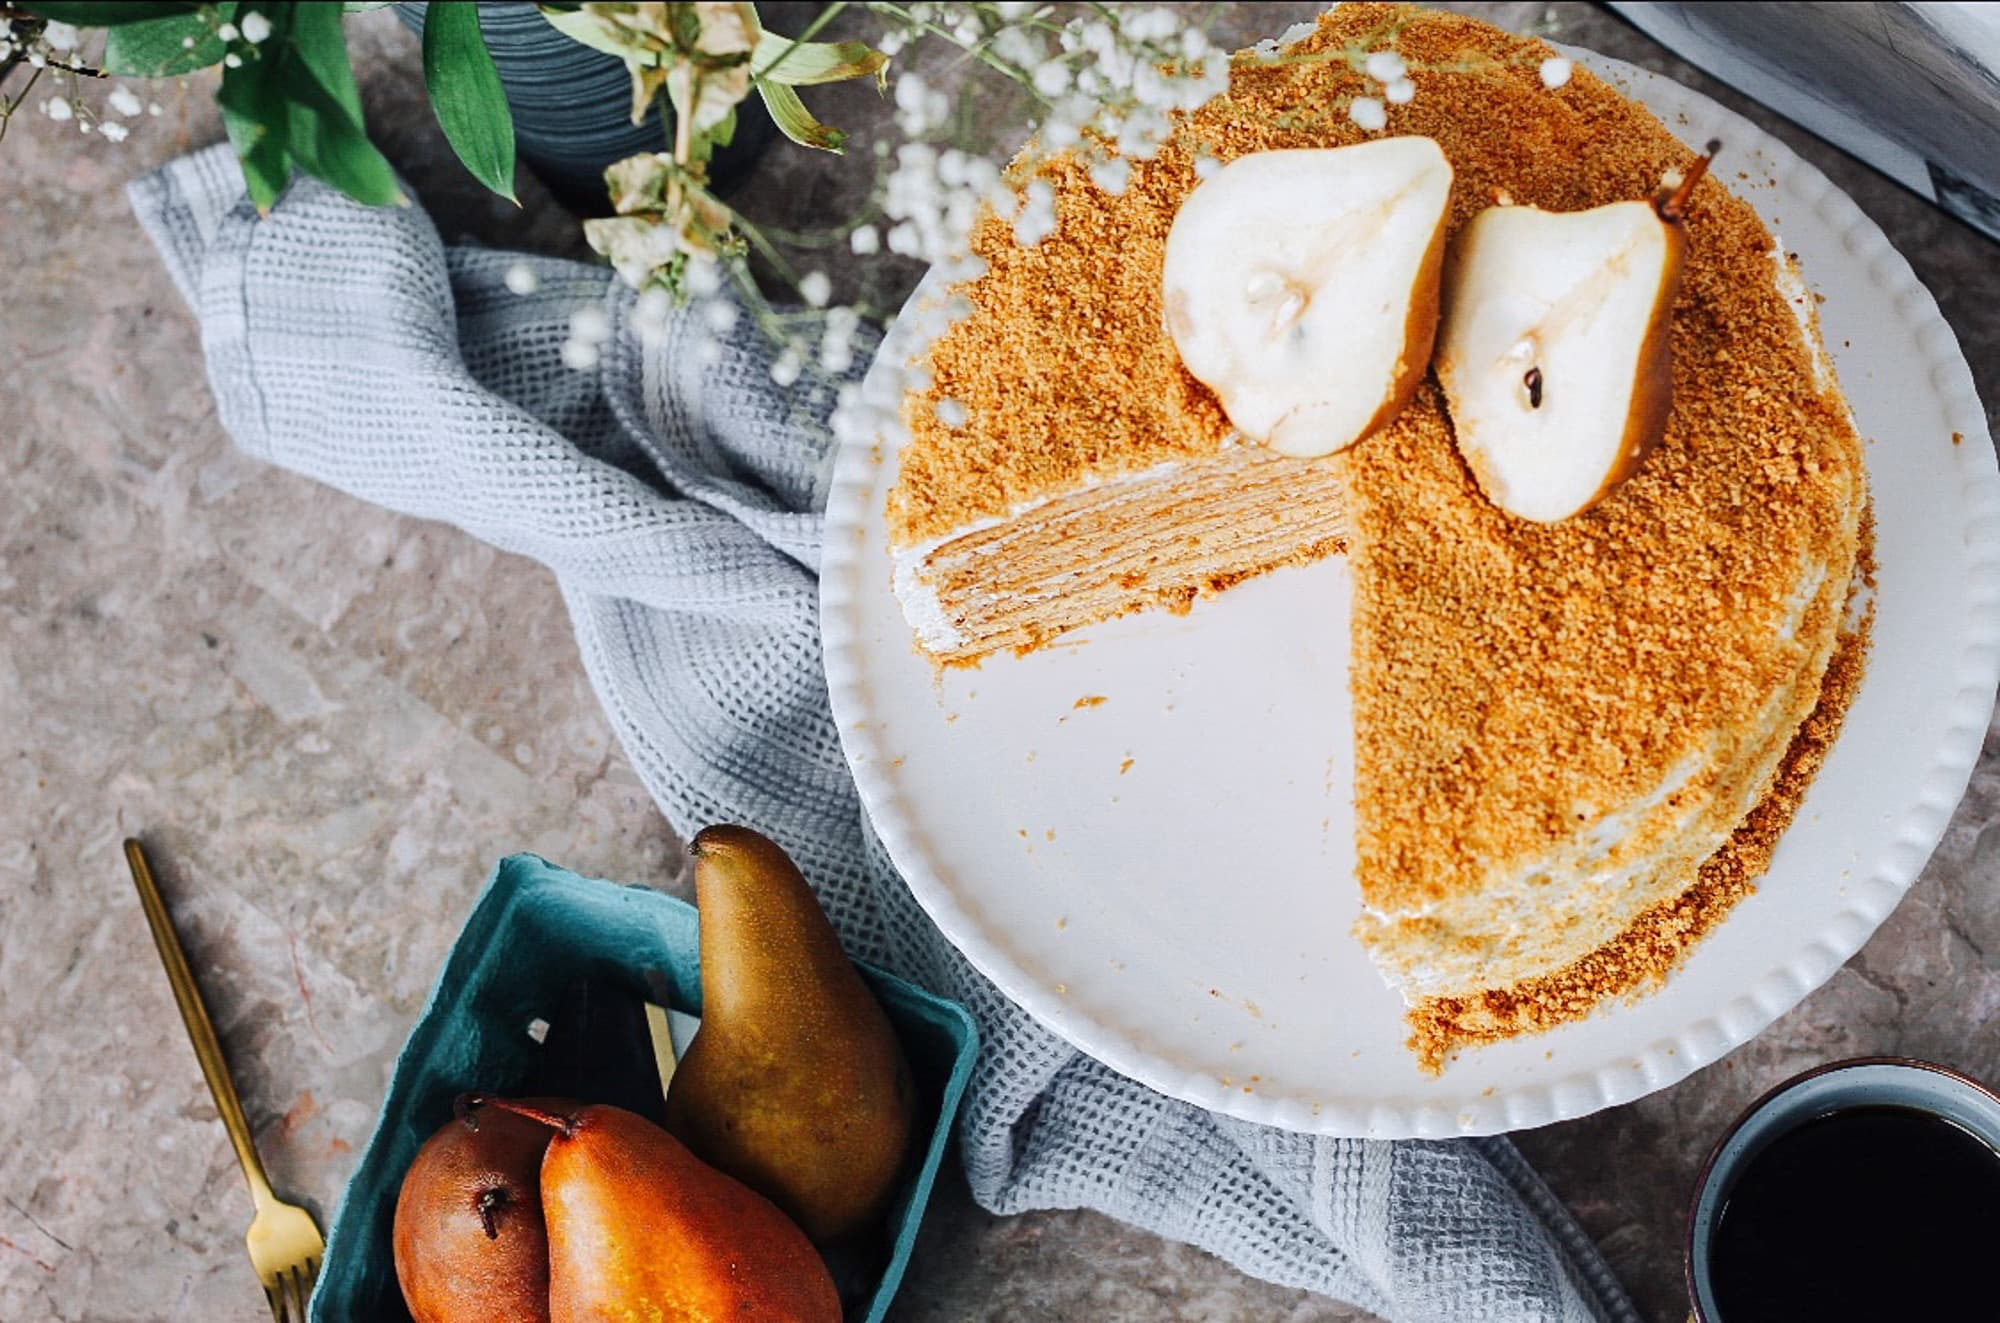 Russian Pear Cake with Ginger Infused Maple Syrup by Runamok Maple